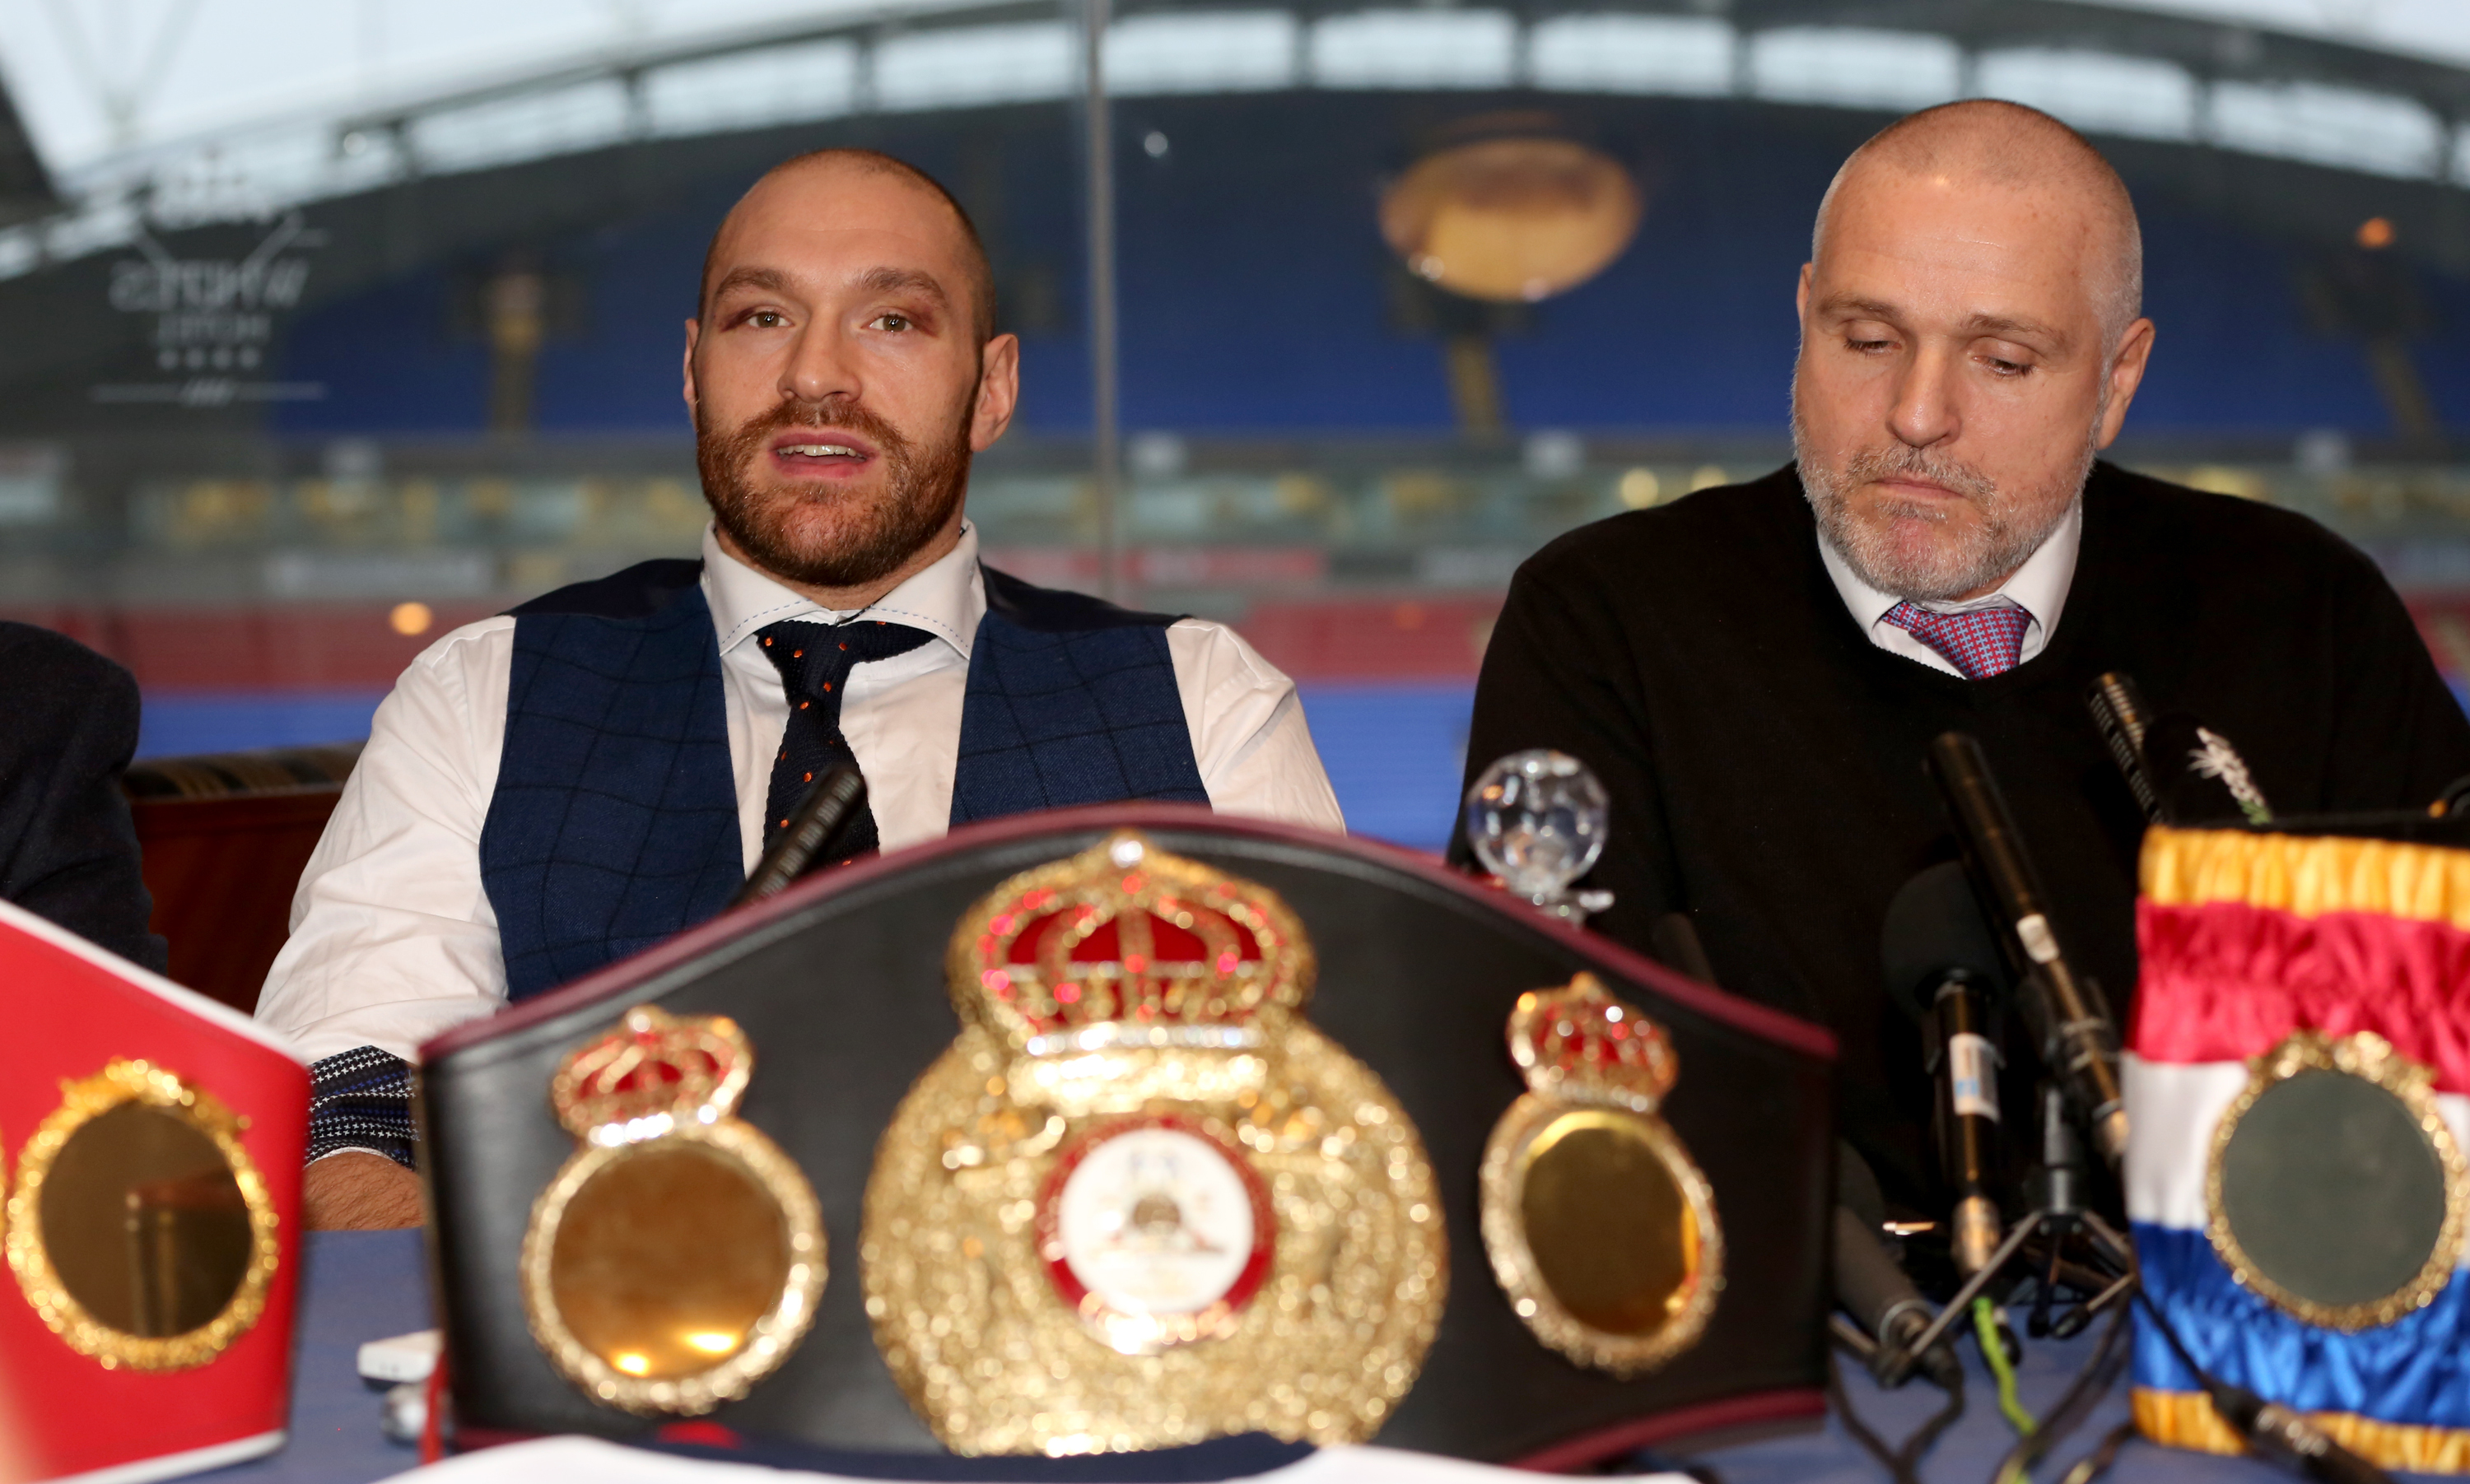 Tyson Fury, left, has not fought since his victory over Wladimir Klitschko